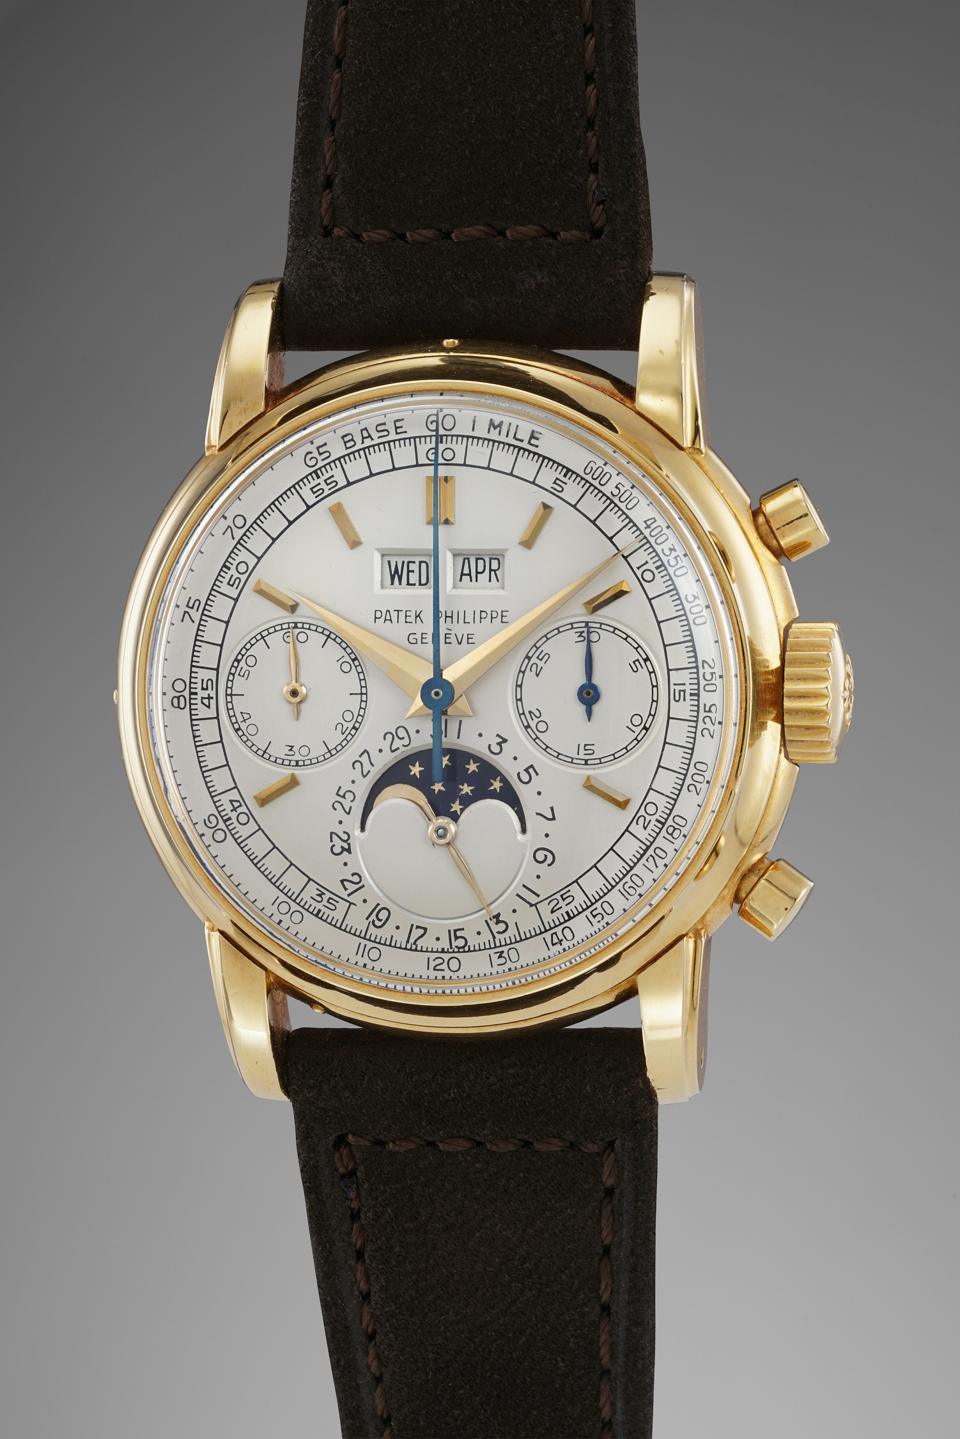 Patek Philippe reference 2499 owned by Jean-Claude Biver sold for more than $2.7 million